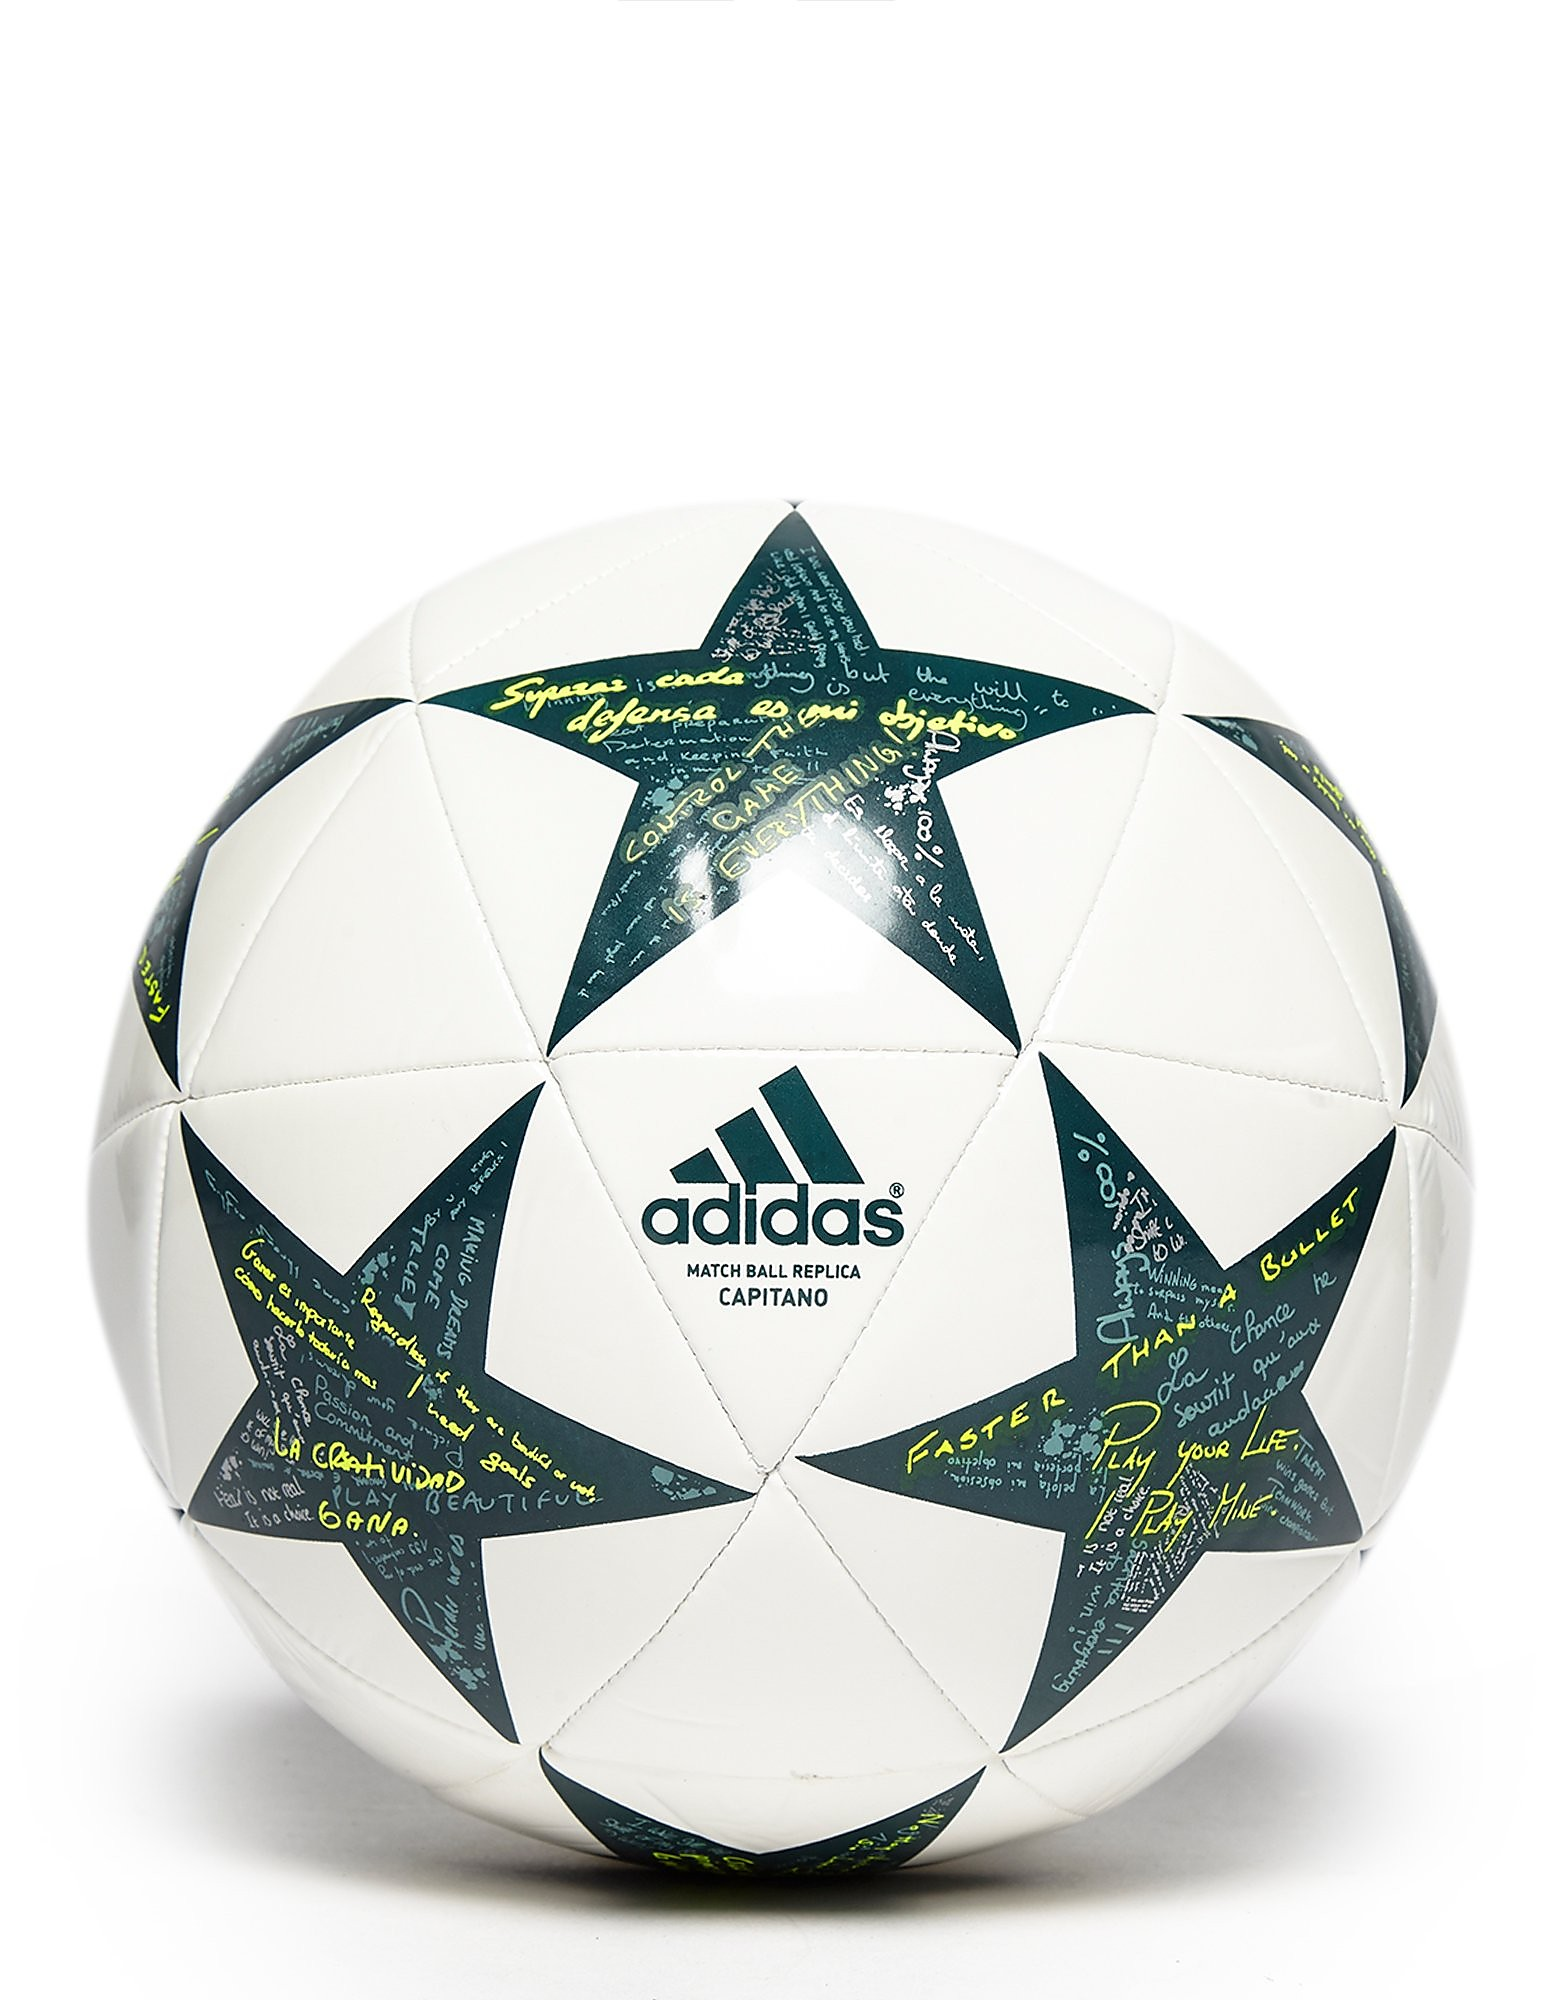 adidas Champions League Finale Capitano Football